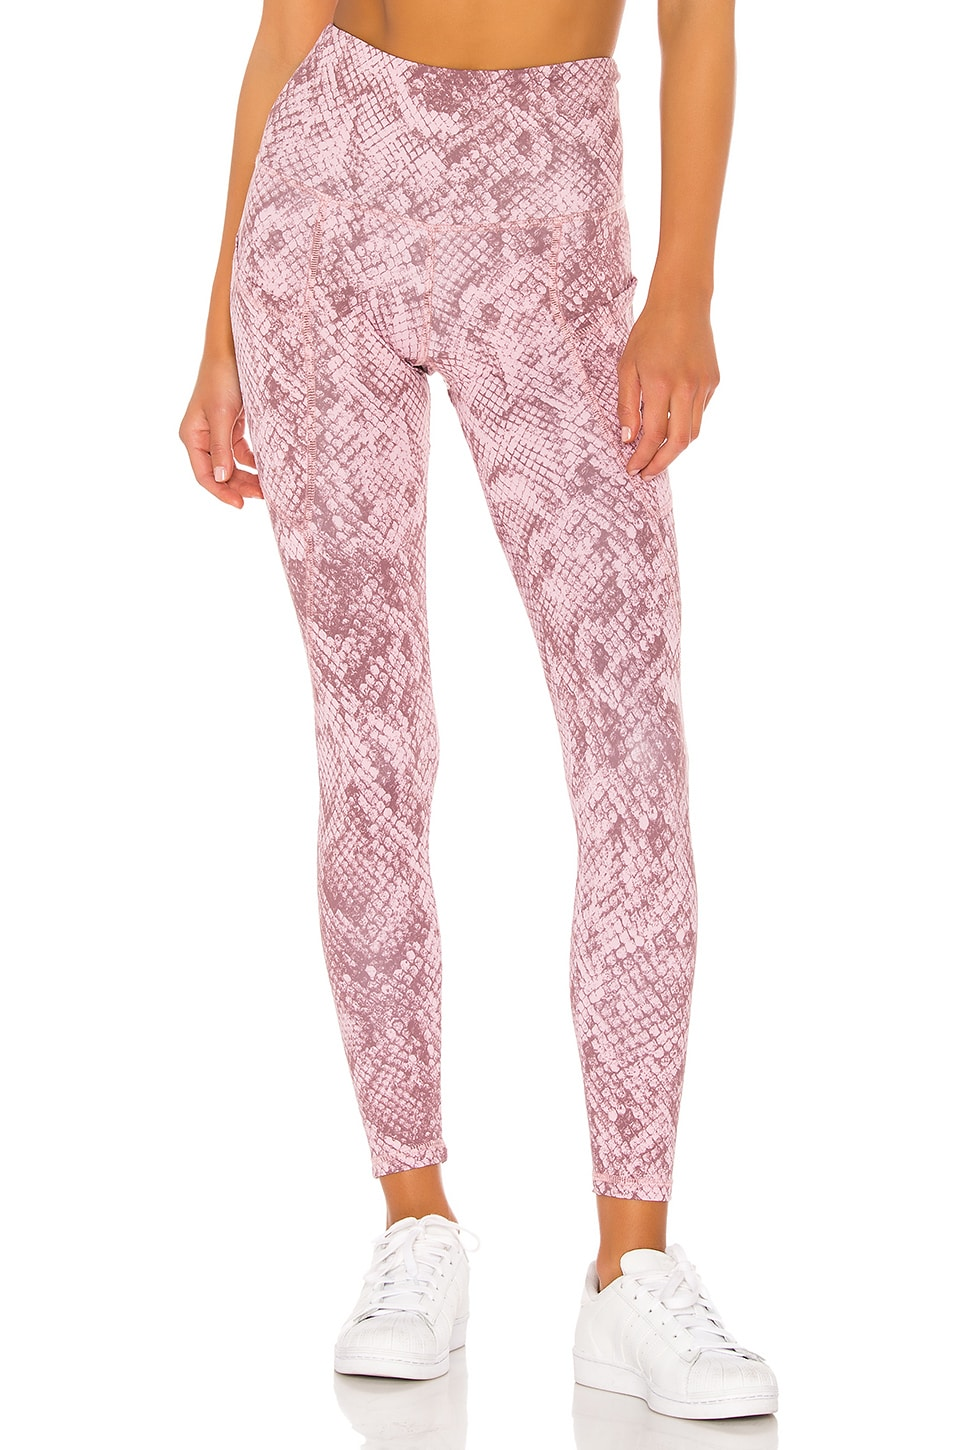 STRUT-THIS Flynn Ankle Pant in Sniper